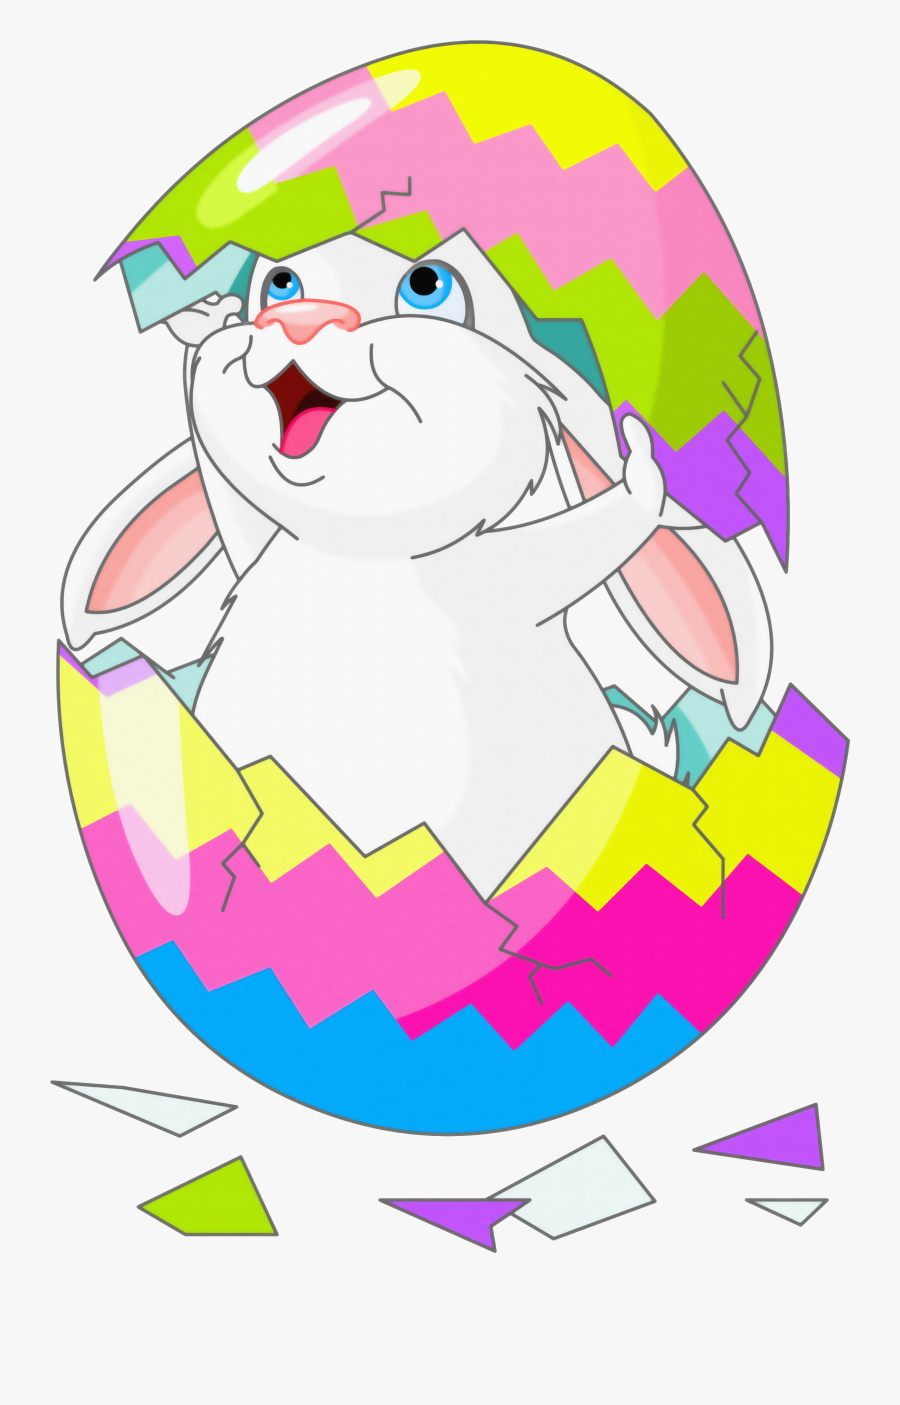 With Egg Easter Bunny Picture Free Hq Image Clipart - Easter Bunny In Egg, Transparent Clipart